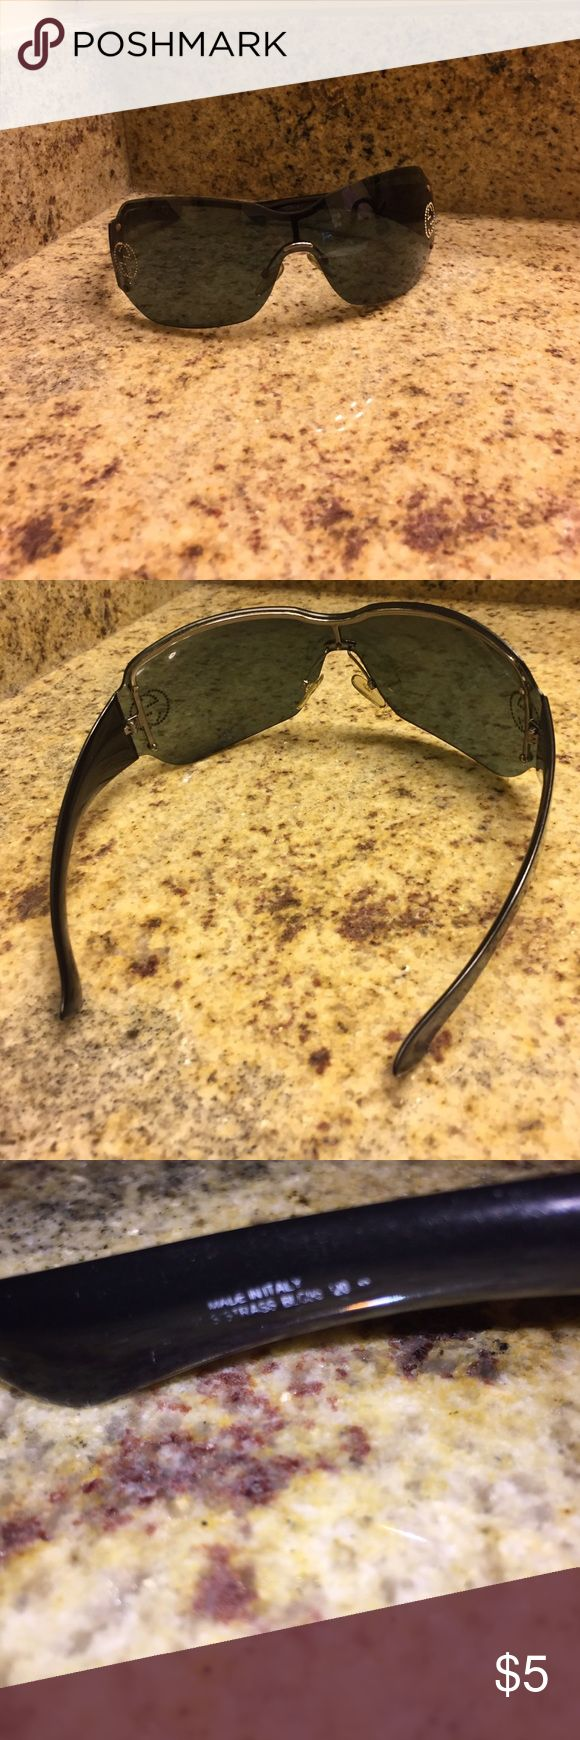 Authentic Gucci Glasses No case- lenses are scratched but not noticeably so when worn. Check separate listing for pic Gucci Accessories Sunglasses